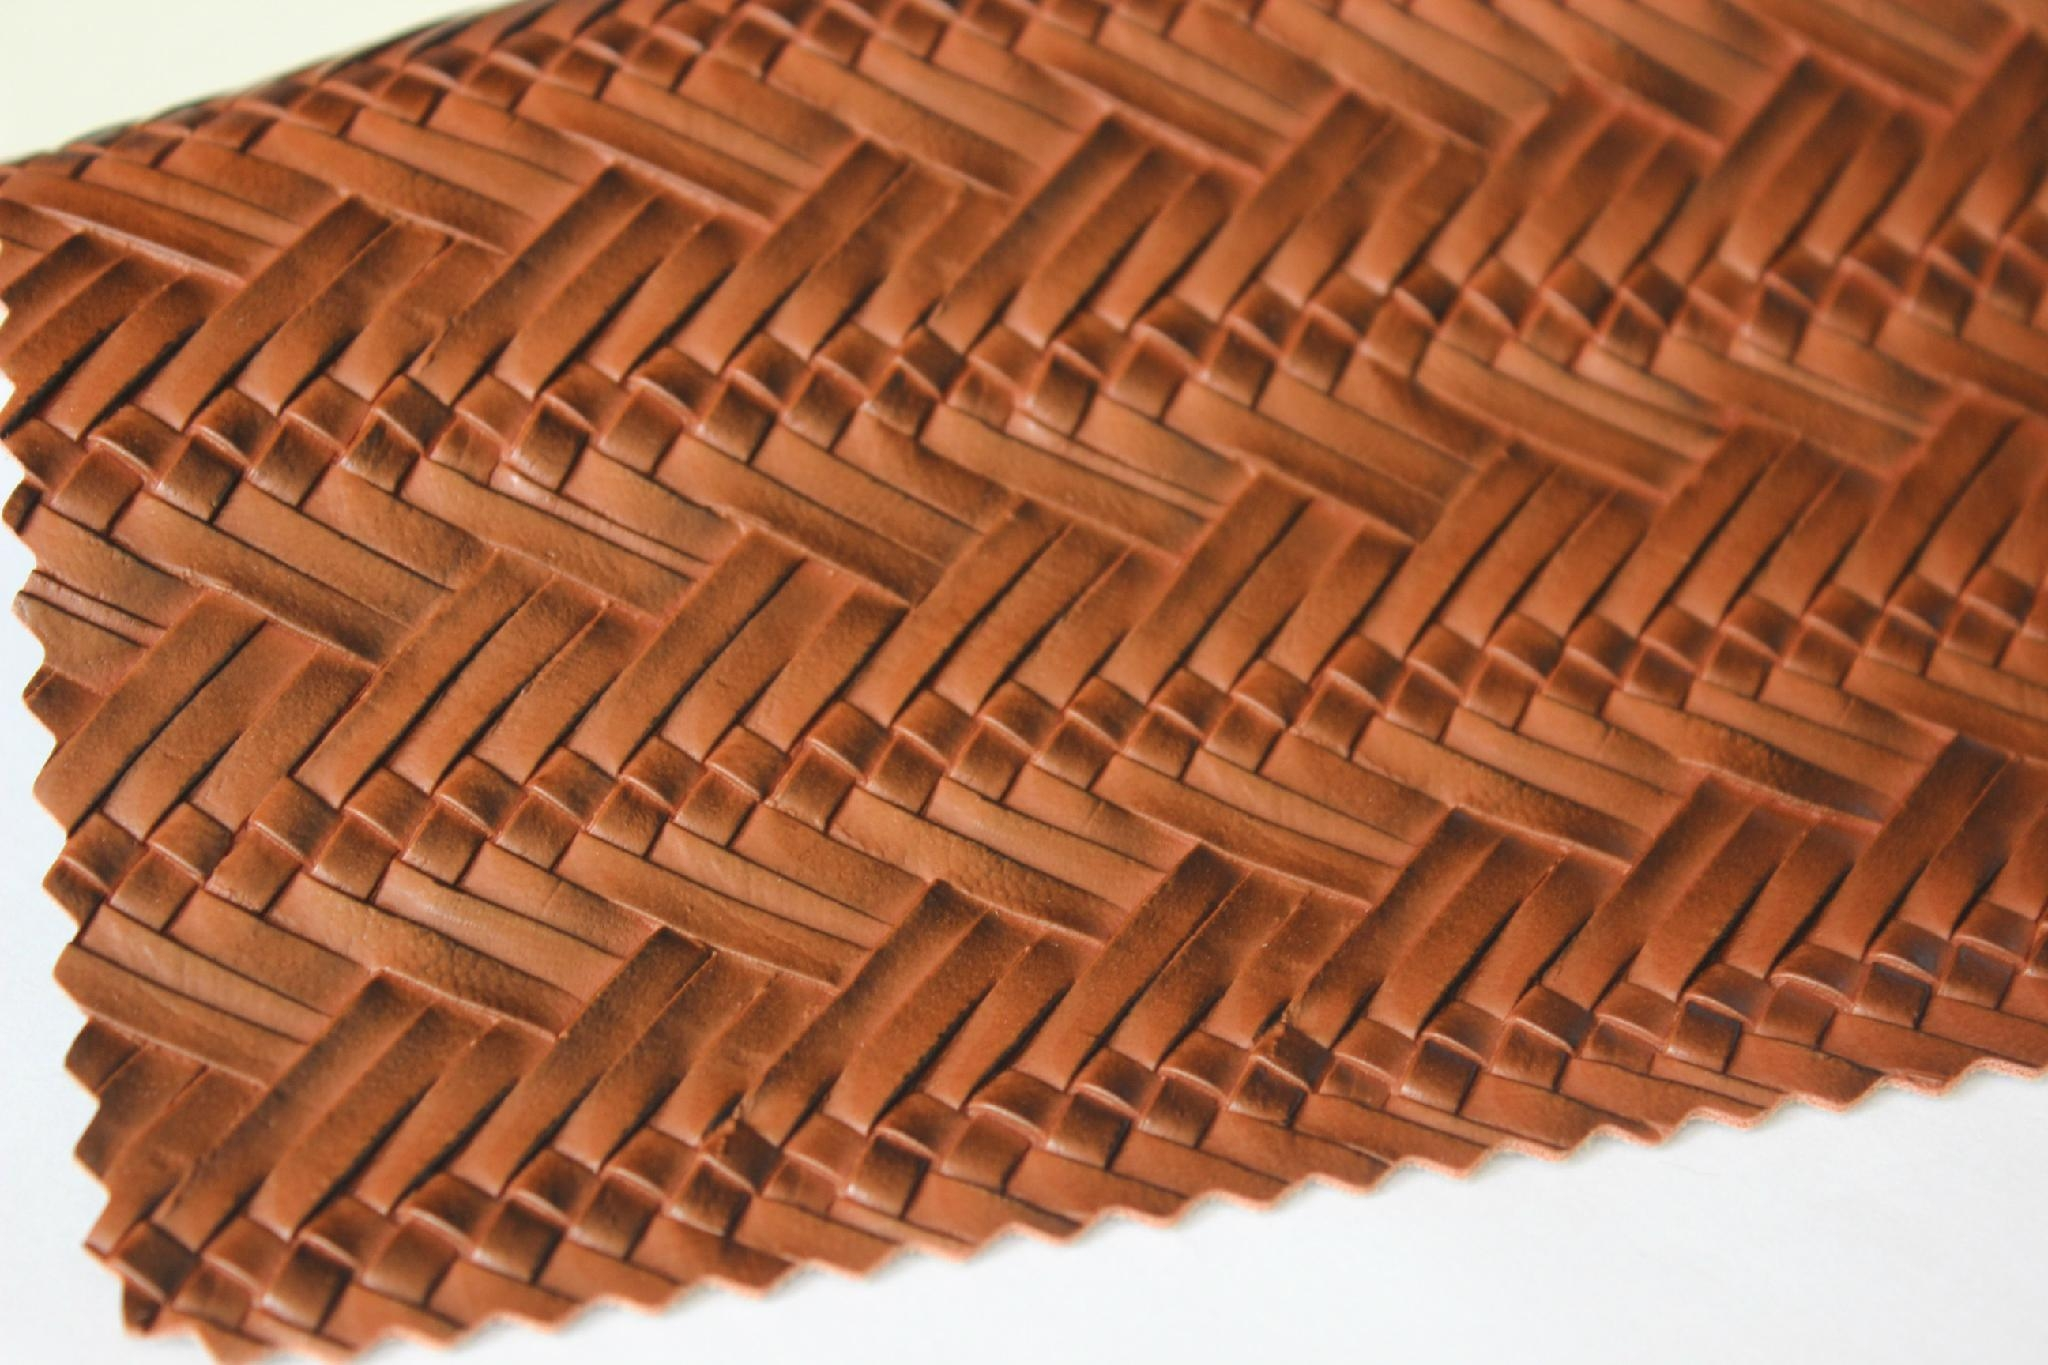 Guangzhou hot selling woven pattern pvc embossed leather fabric for making bags 1